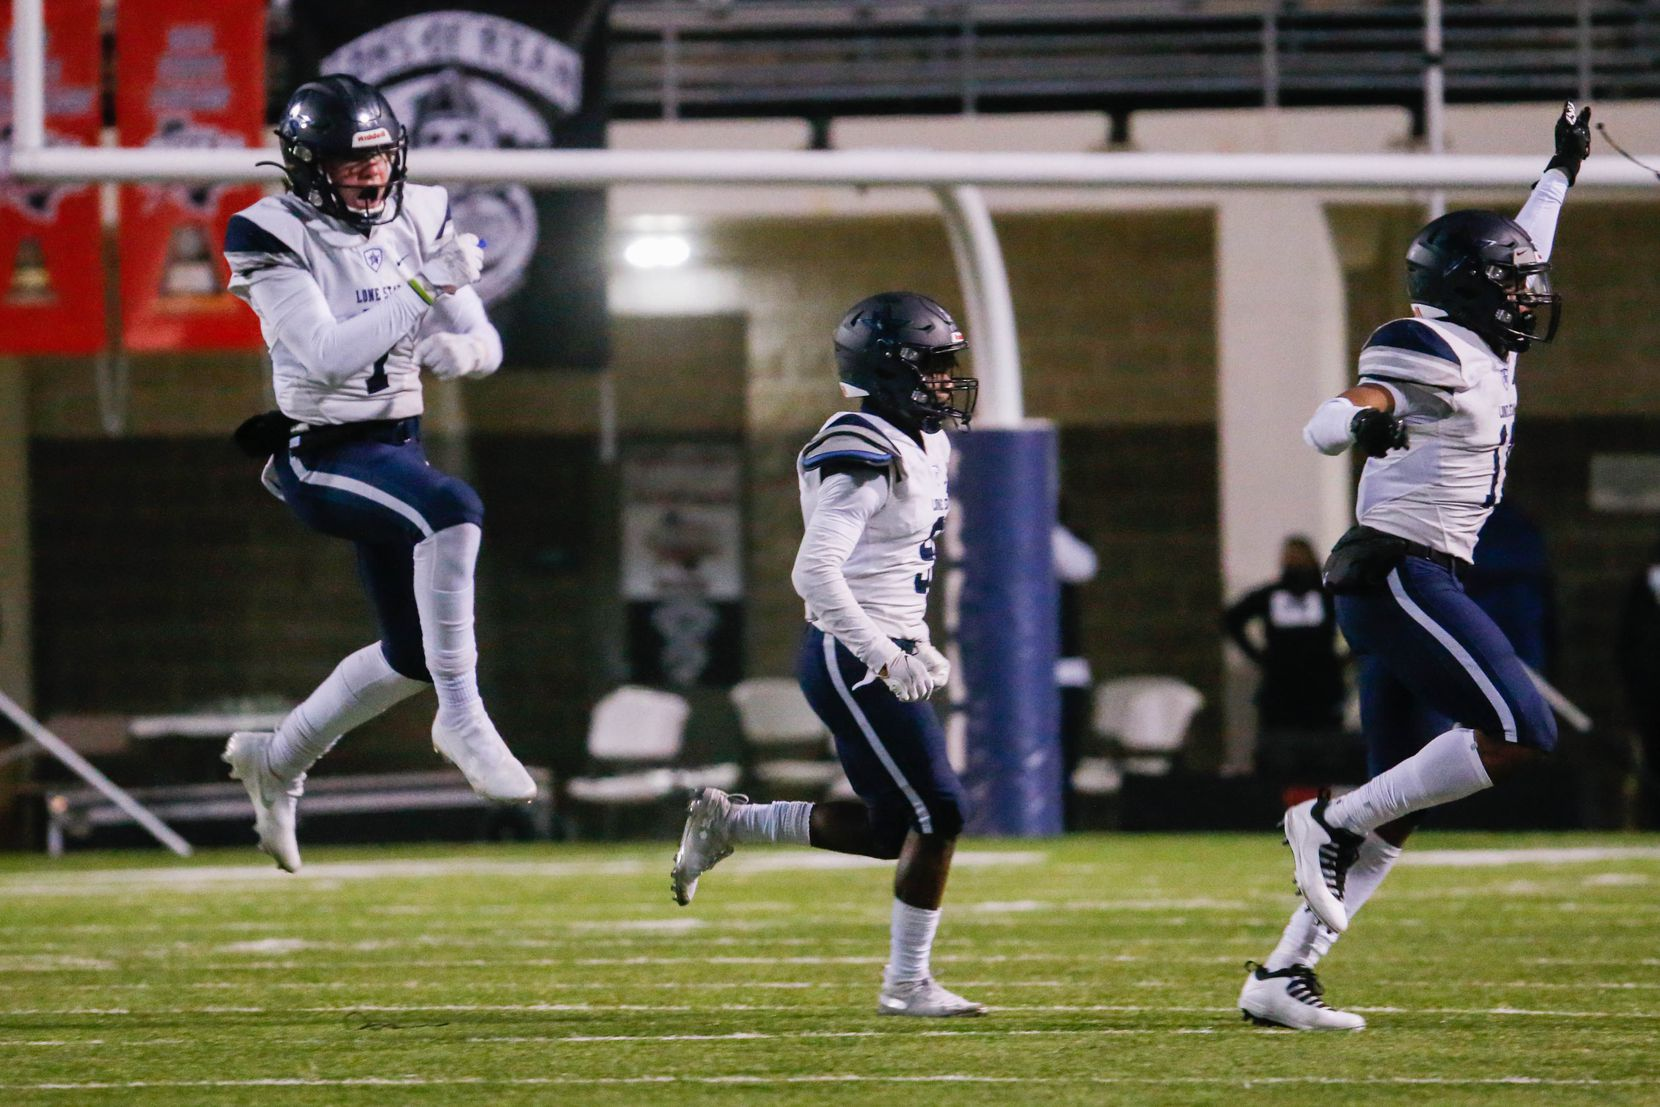 Frisco Lone Star defensive players celebrate a recovered fumble during the second quarter of a football game against Denton Ryan at the C.H. Collins Complex in Denton on Thursday, Dec. 4, 2020. The game is tied at halftime, 14-14. (Juan Figueroa/ The Dallas Morning News)